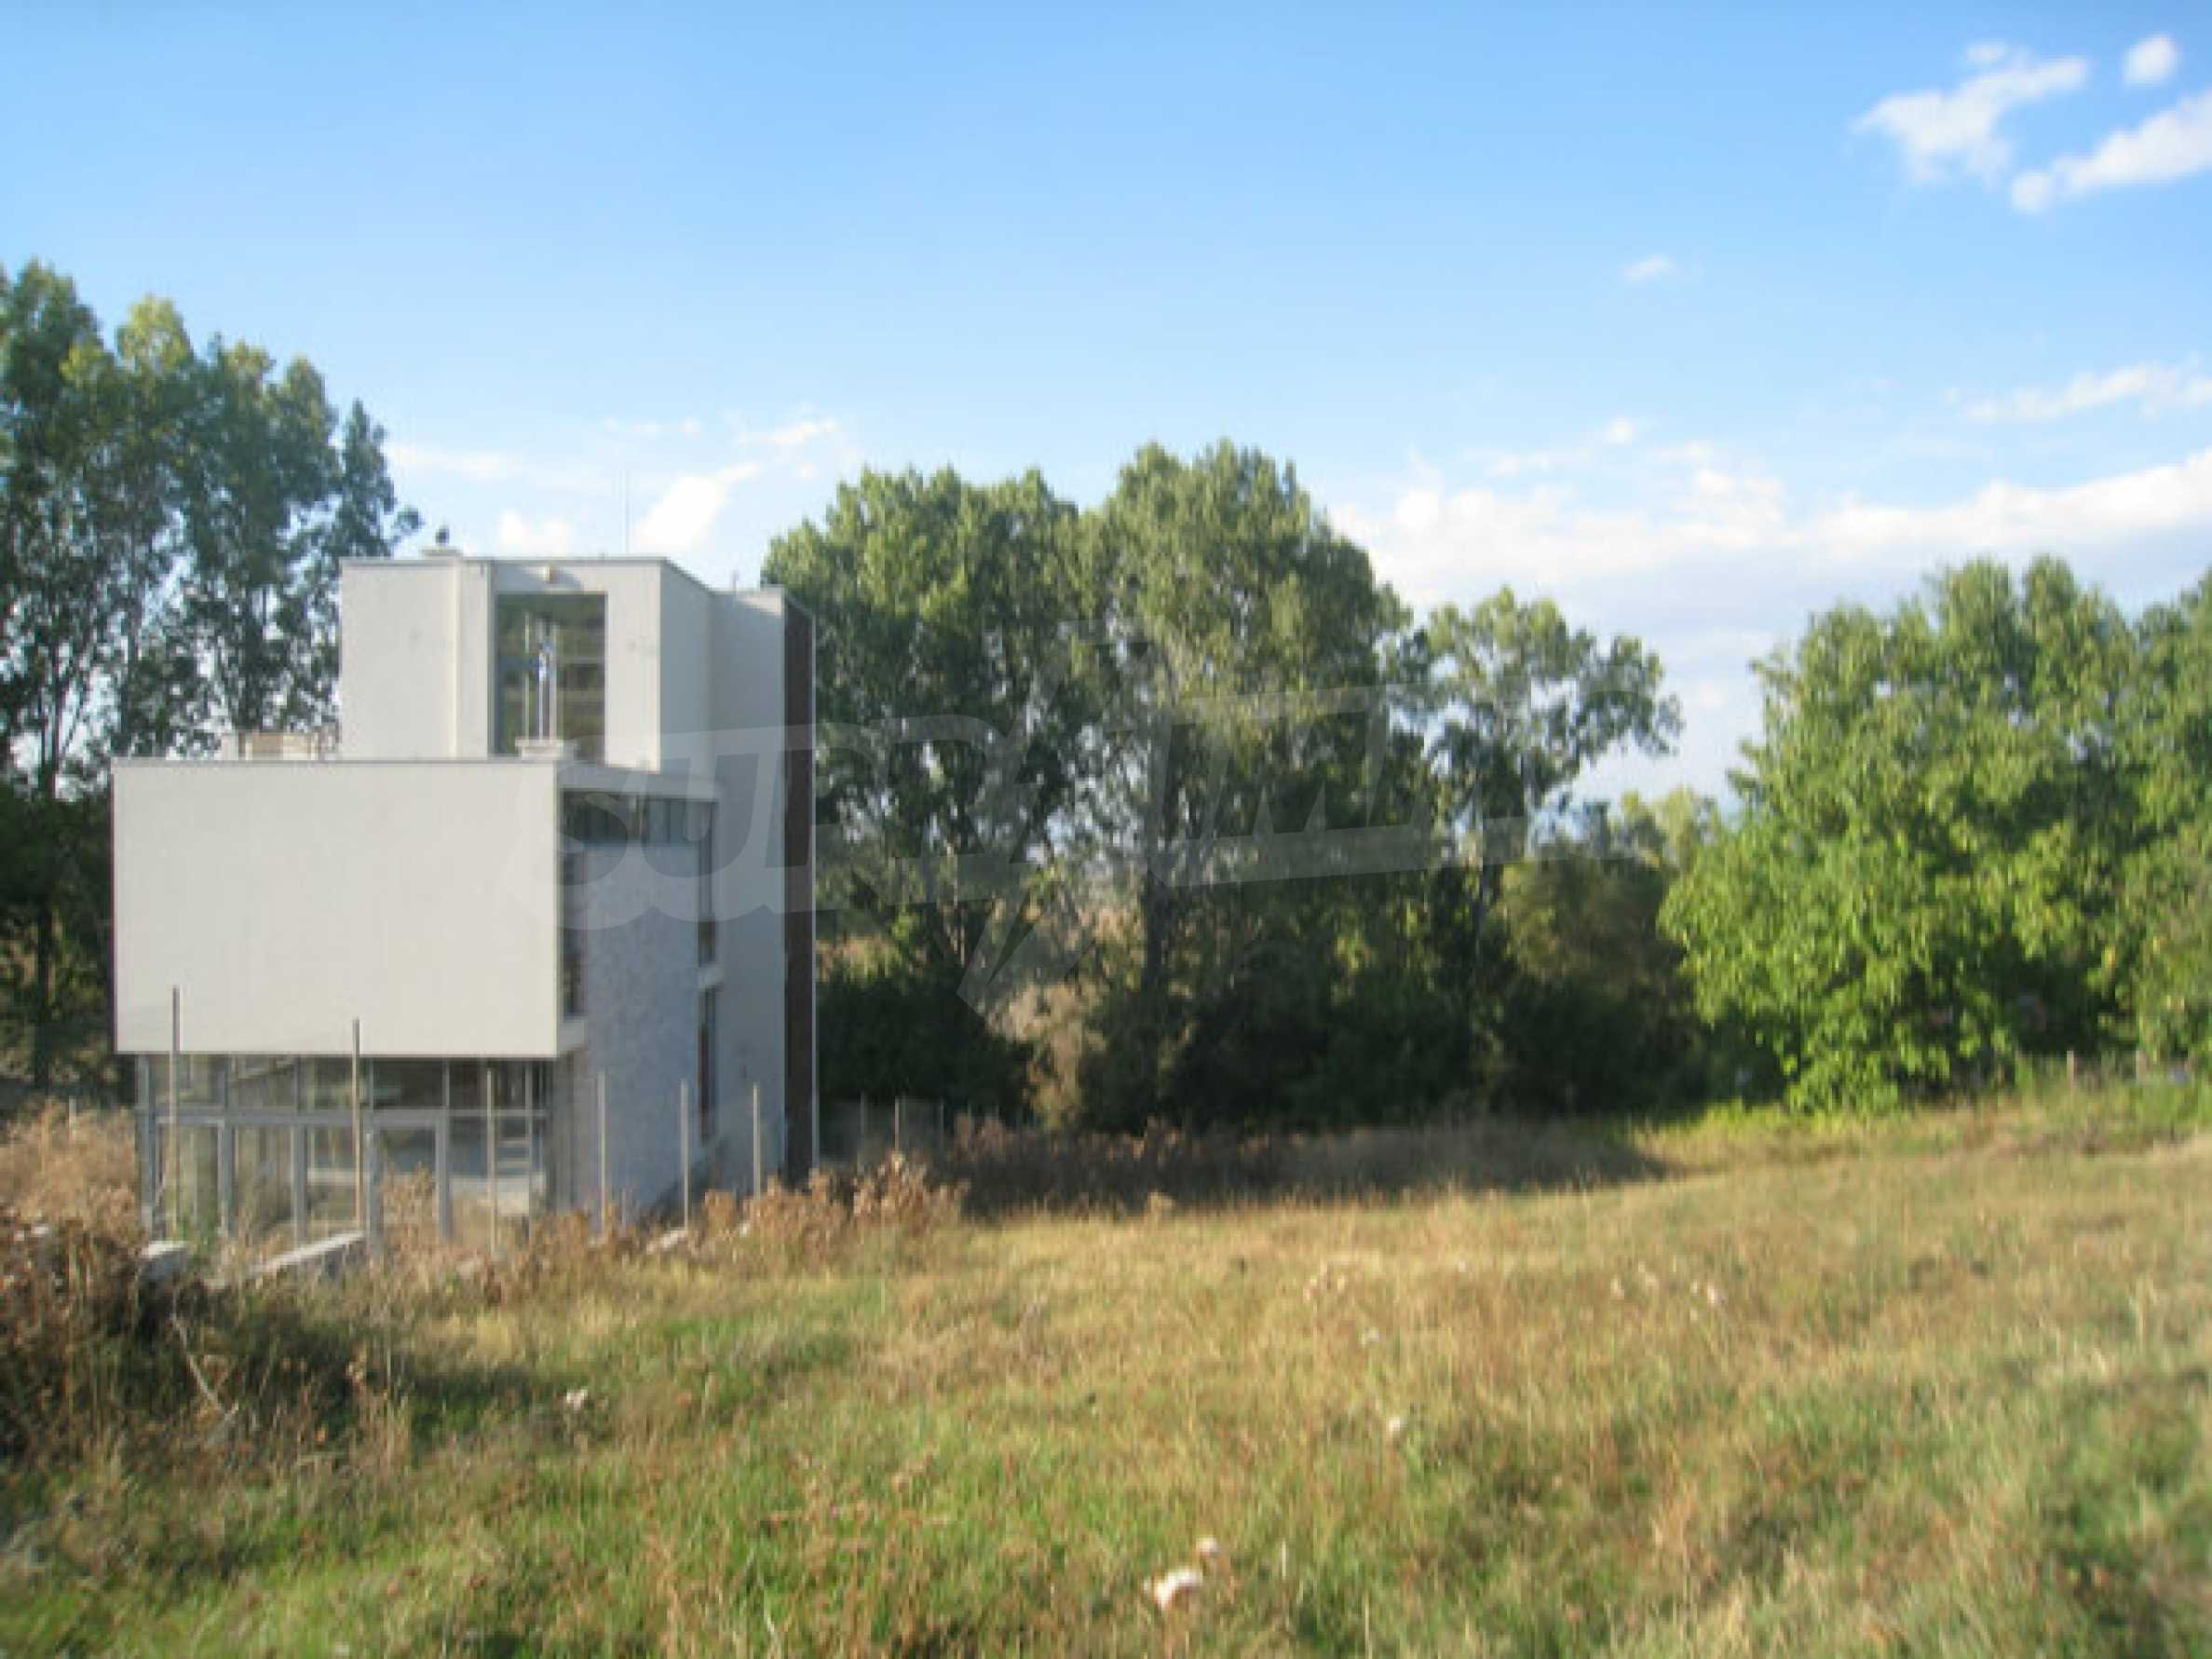 Regulated plot of land for rural private house or villa near Sofia 4